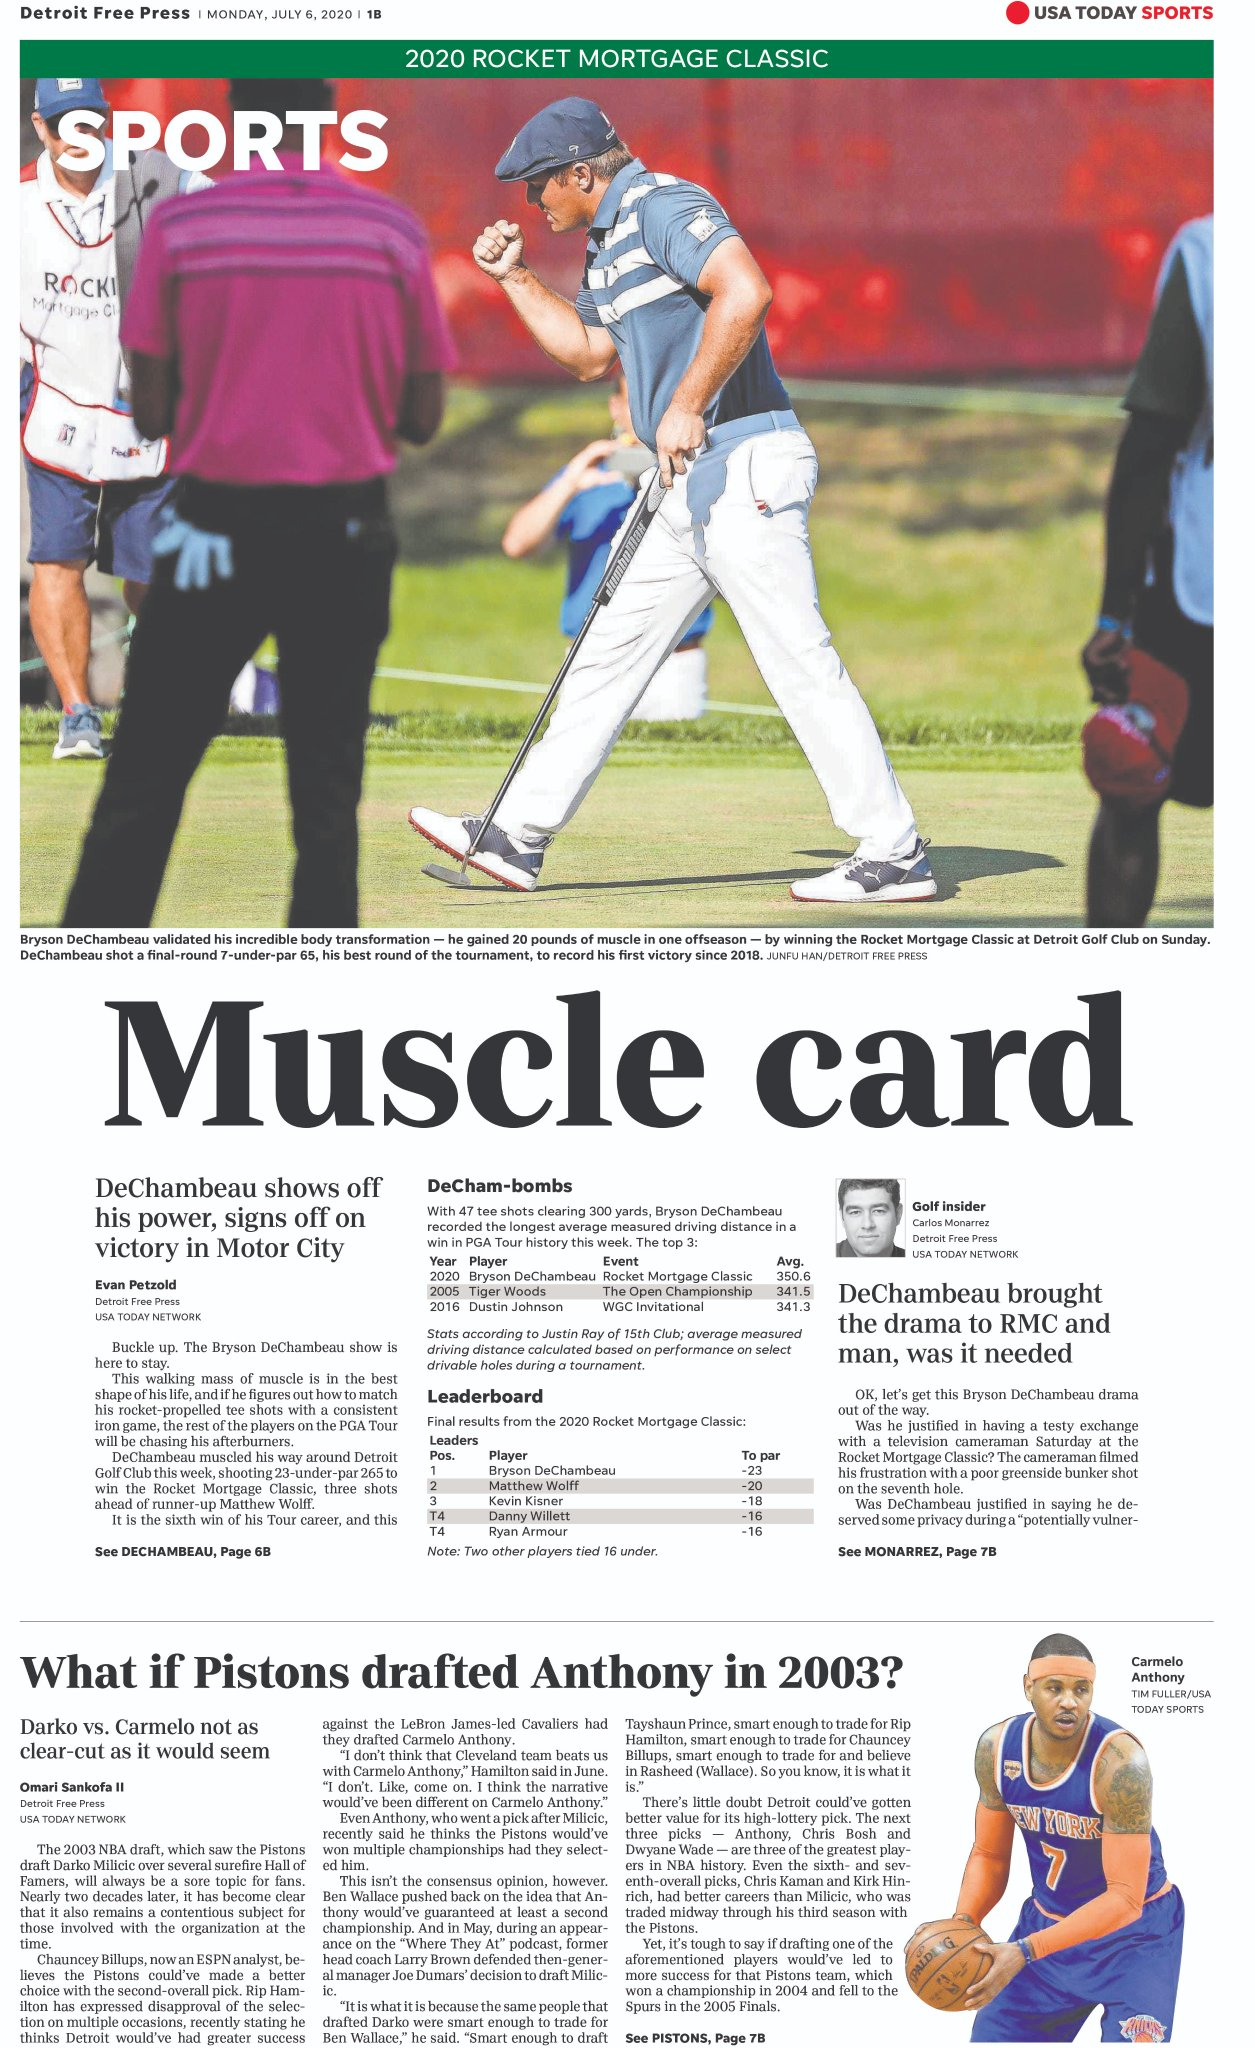 Freep Sports On Twitter Front Page From Today S Sports Section In Freep Celebrating Bryson Dechambeau S Win At The Rocketmortgageclassic In Detroit Https T Co X4esgvhqzn